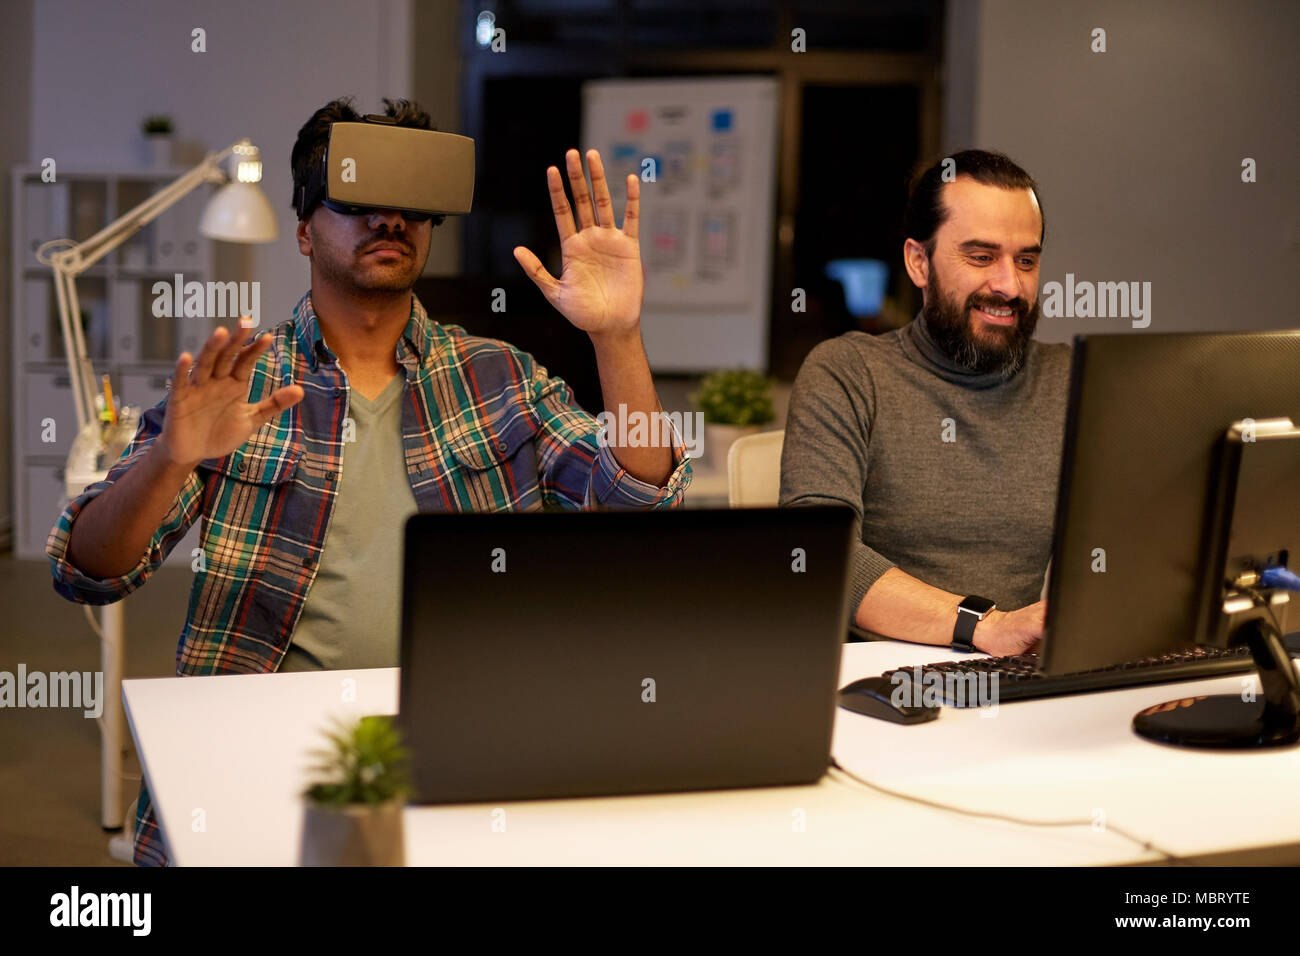 creative man in virtual reality headset at office - Stock Image